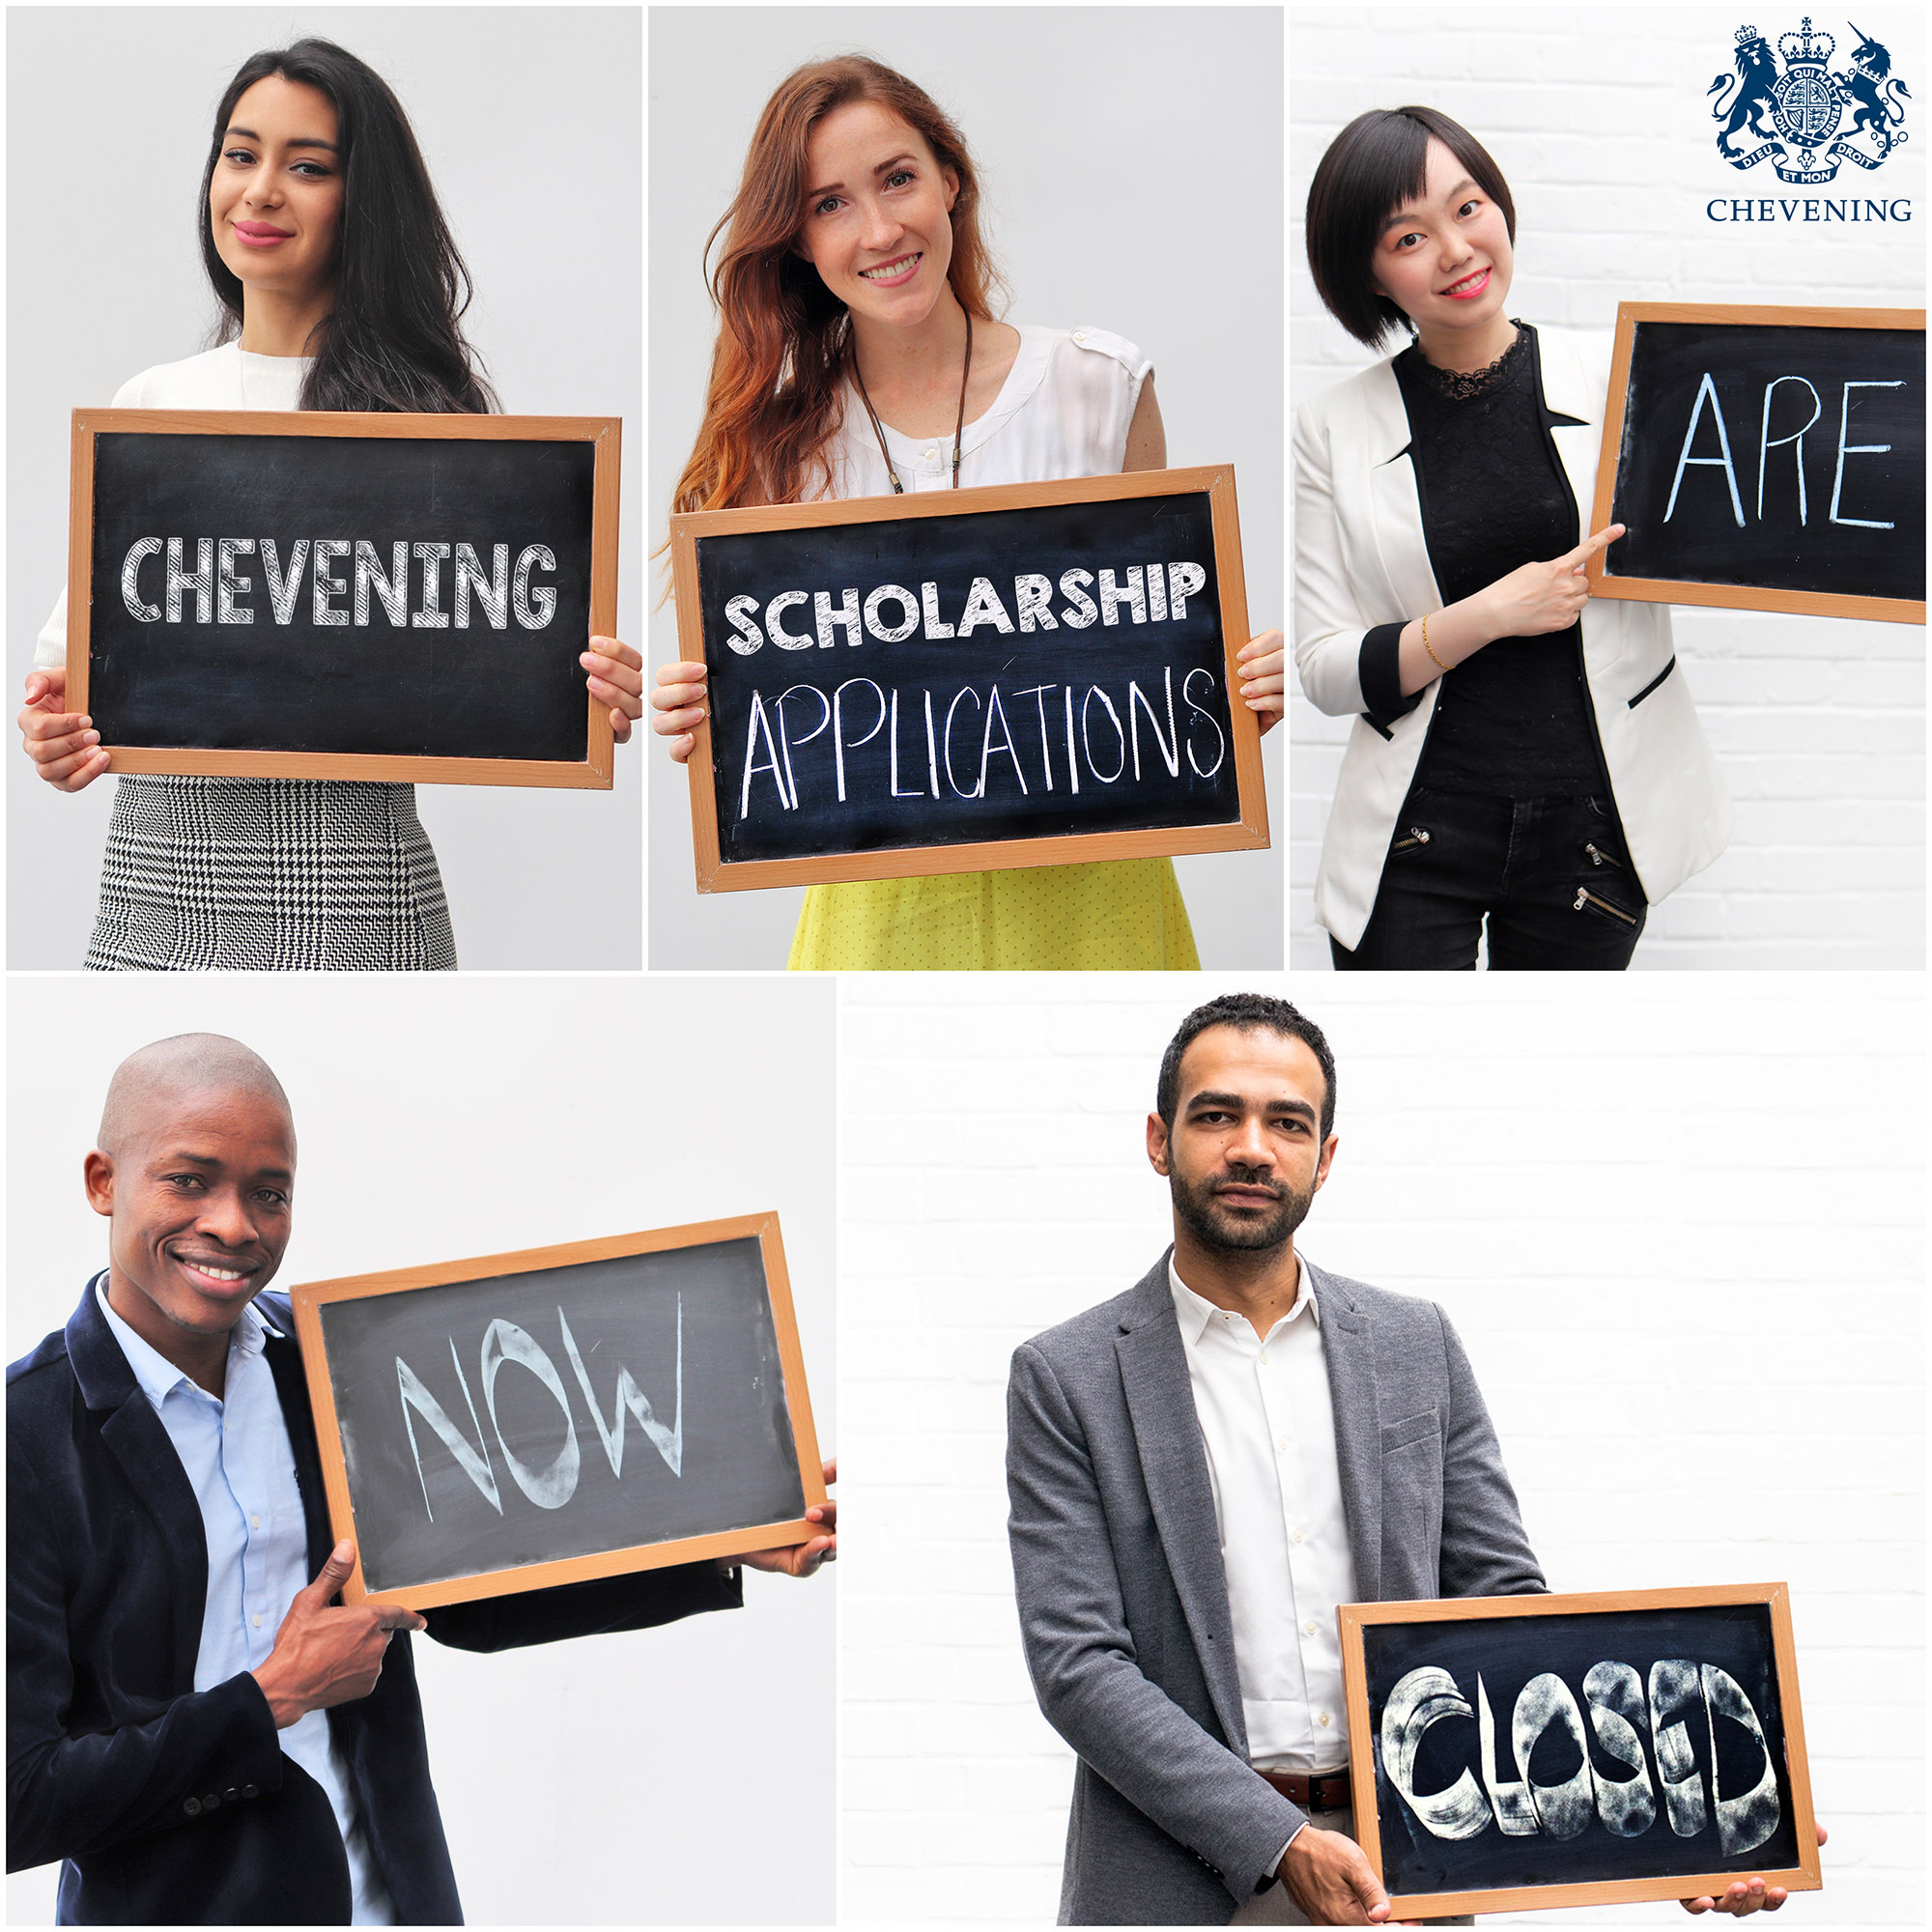 Chevening Scholarship applications now closed